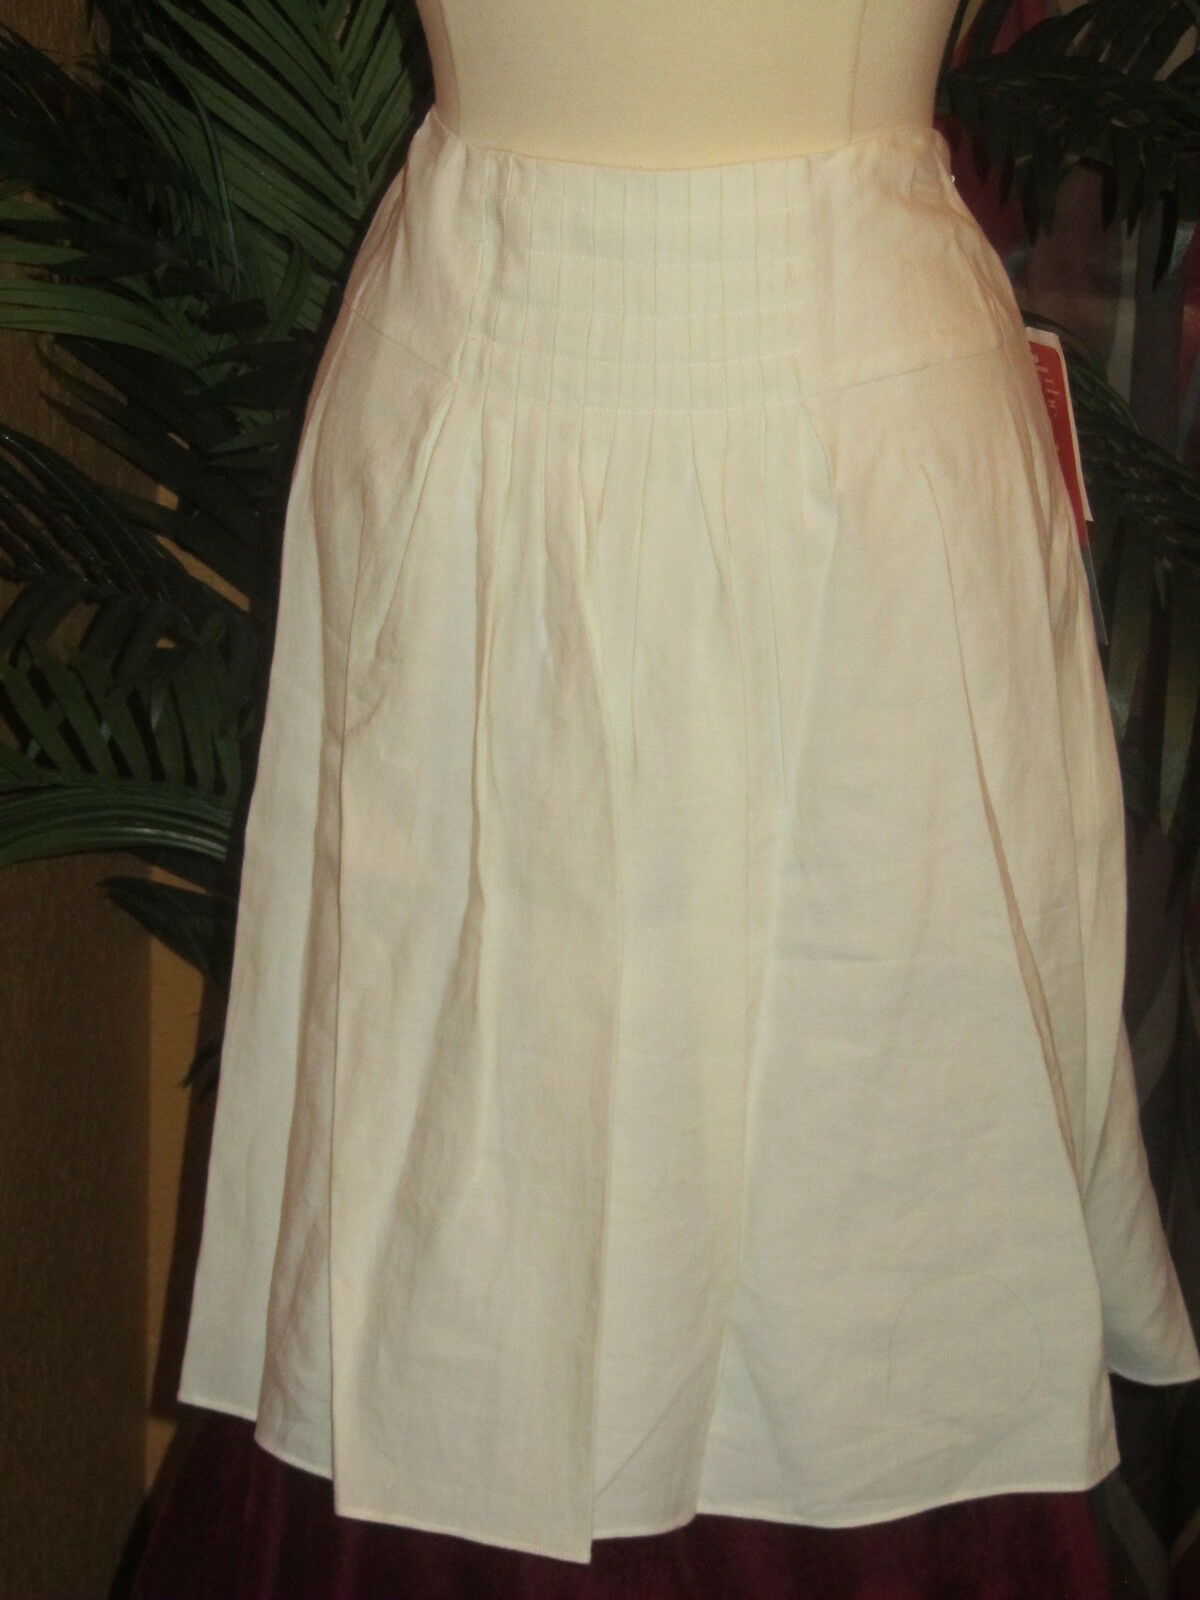 MAGASCHONI COLLECTION 8 NWT  274 white women's lined skirt linen